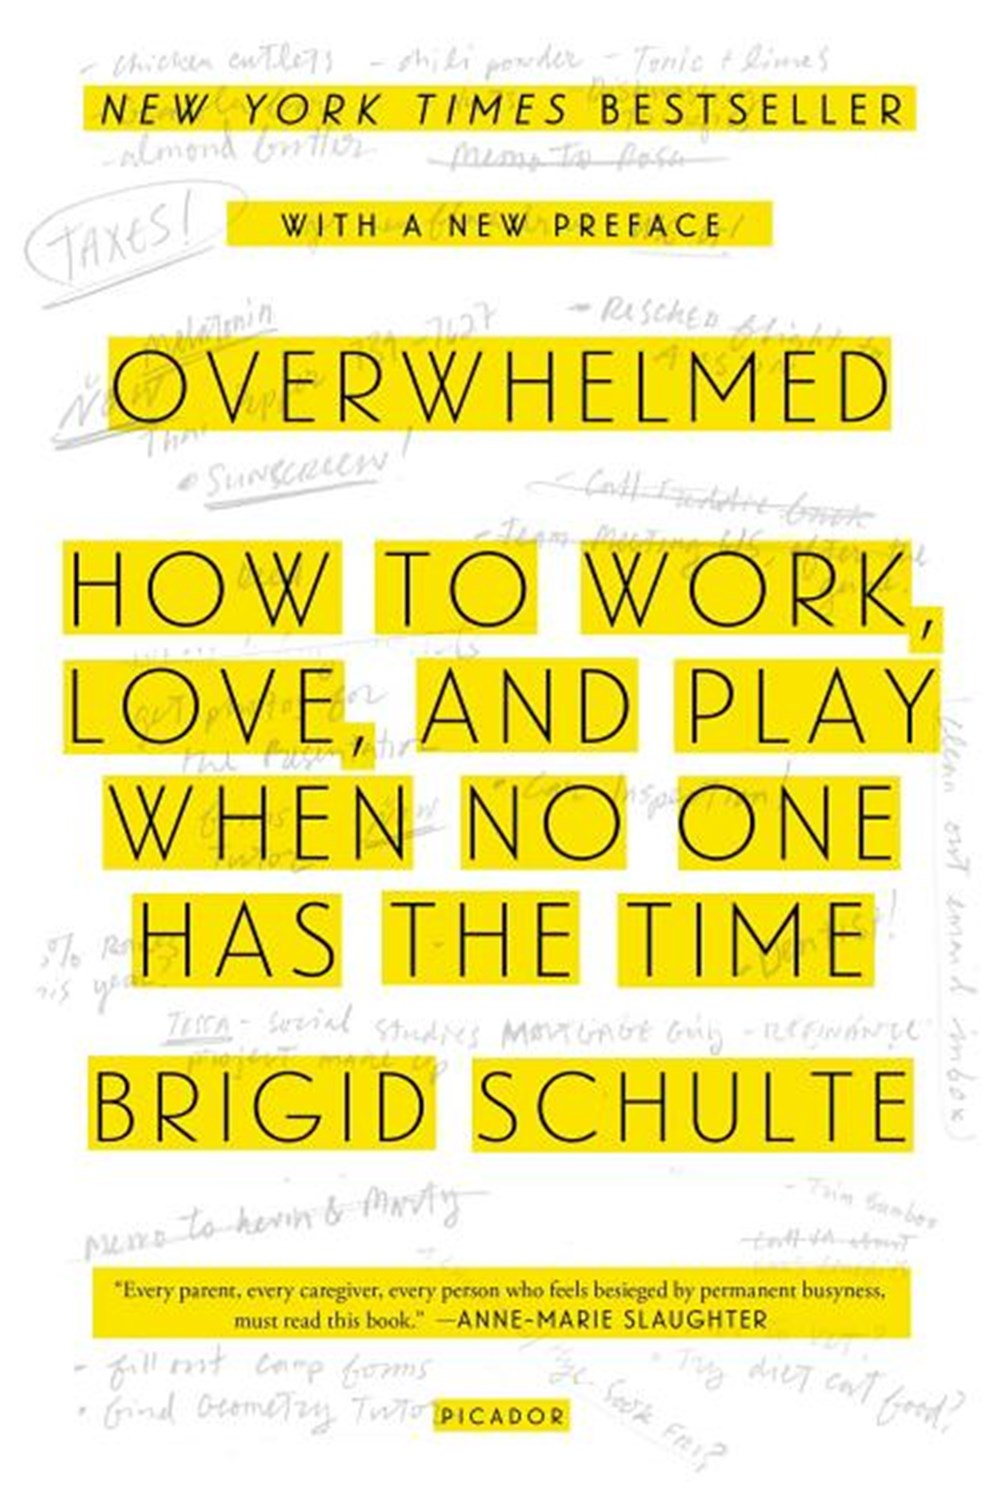 Overwhelmed How to Work, Love, and Play When No One Has the Time